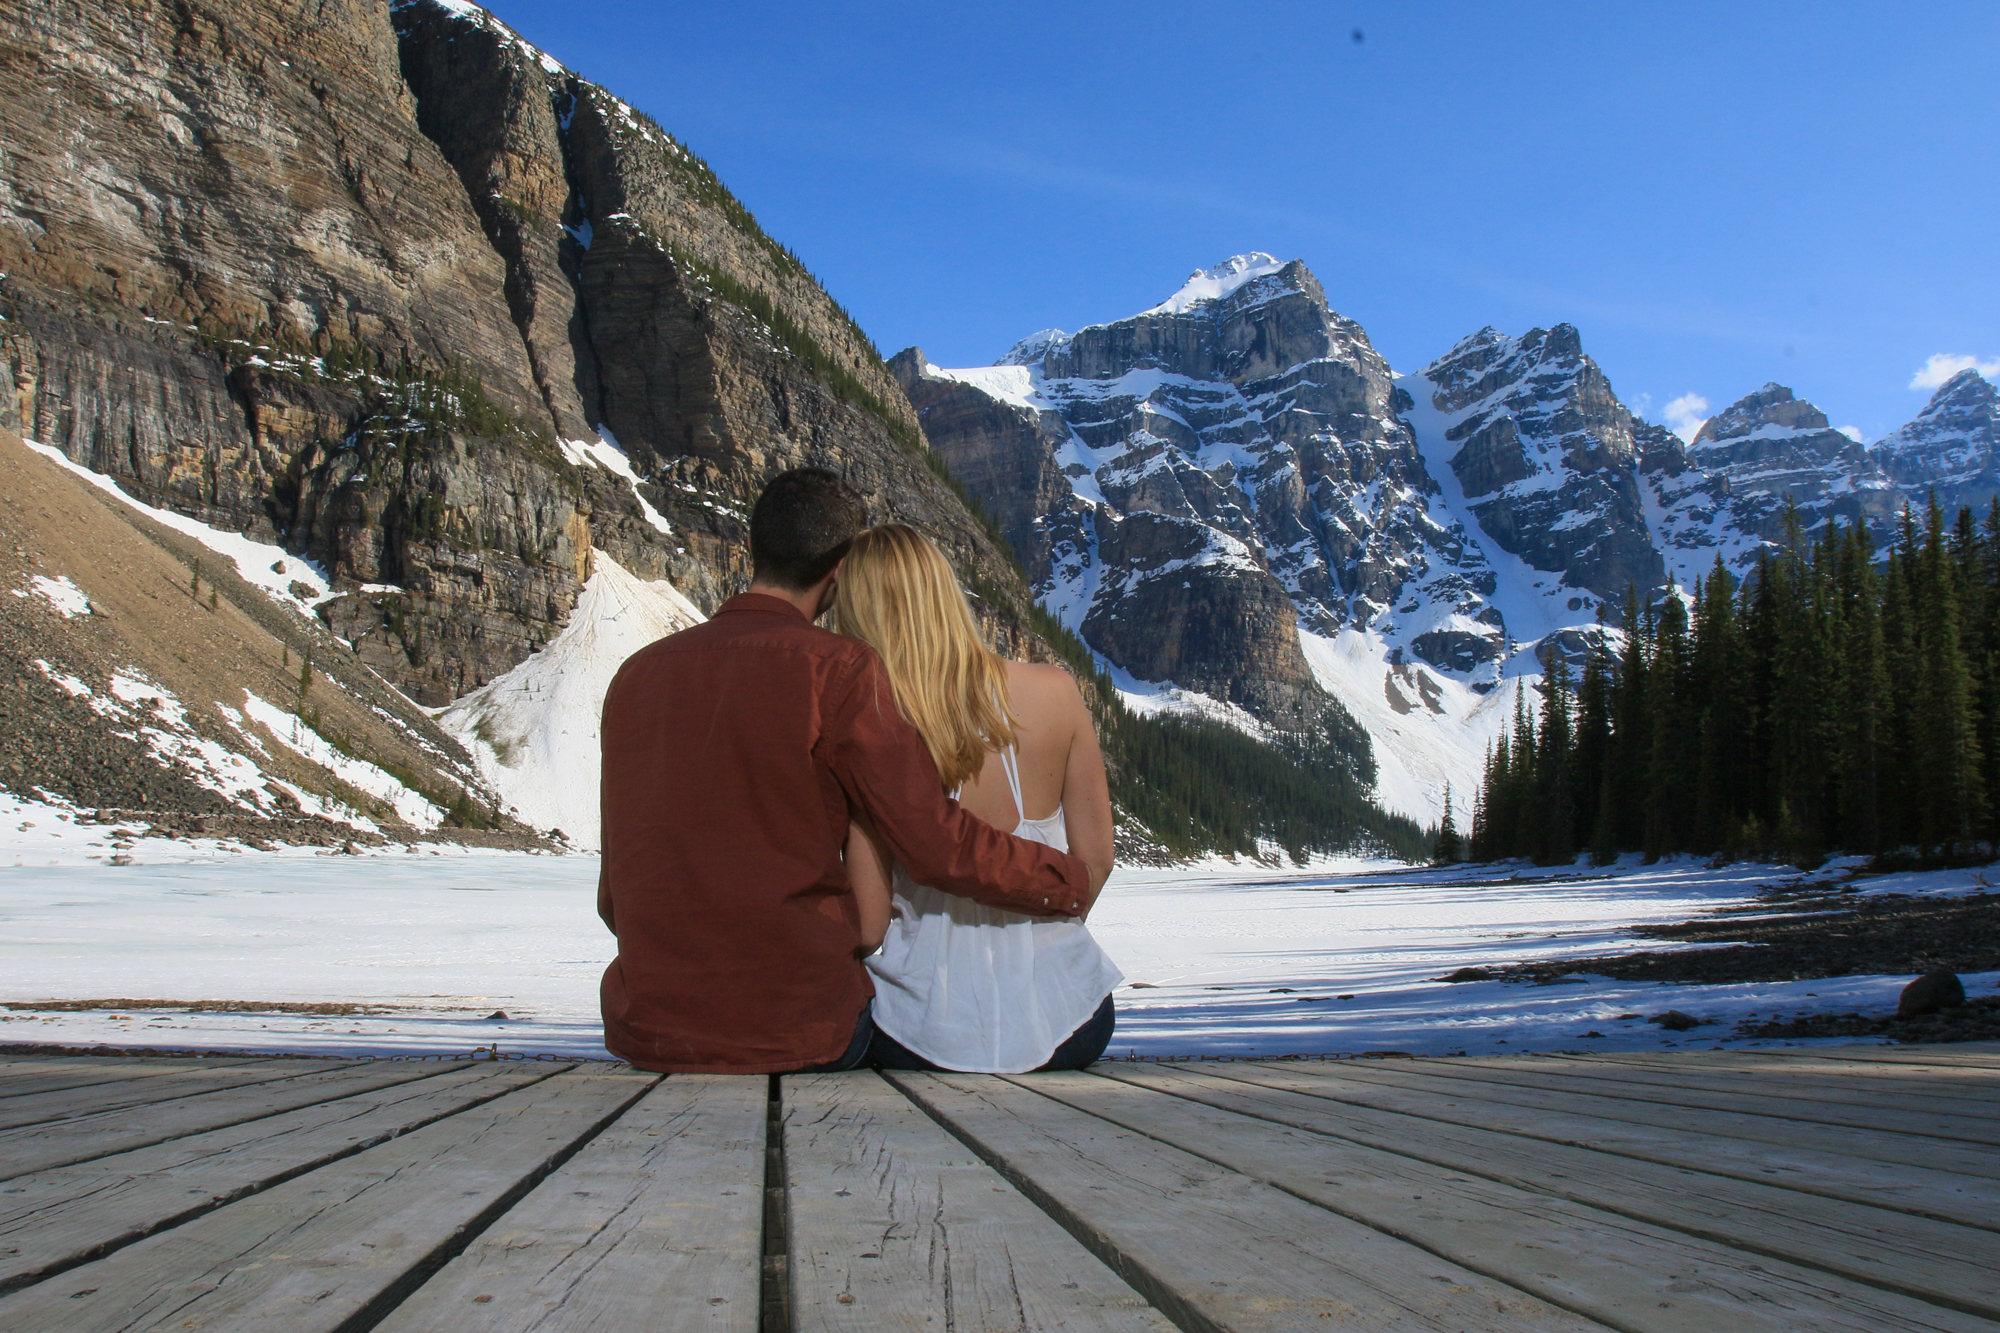 Moraine Lake engagement session with Banff photographers, Burnett Photography.Moraine Lake marriage proposal & engagement session with Banff photographers, Burnett Photography.